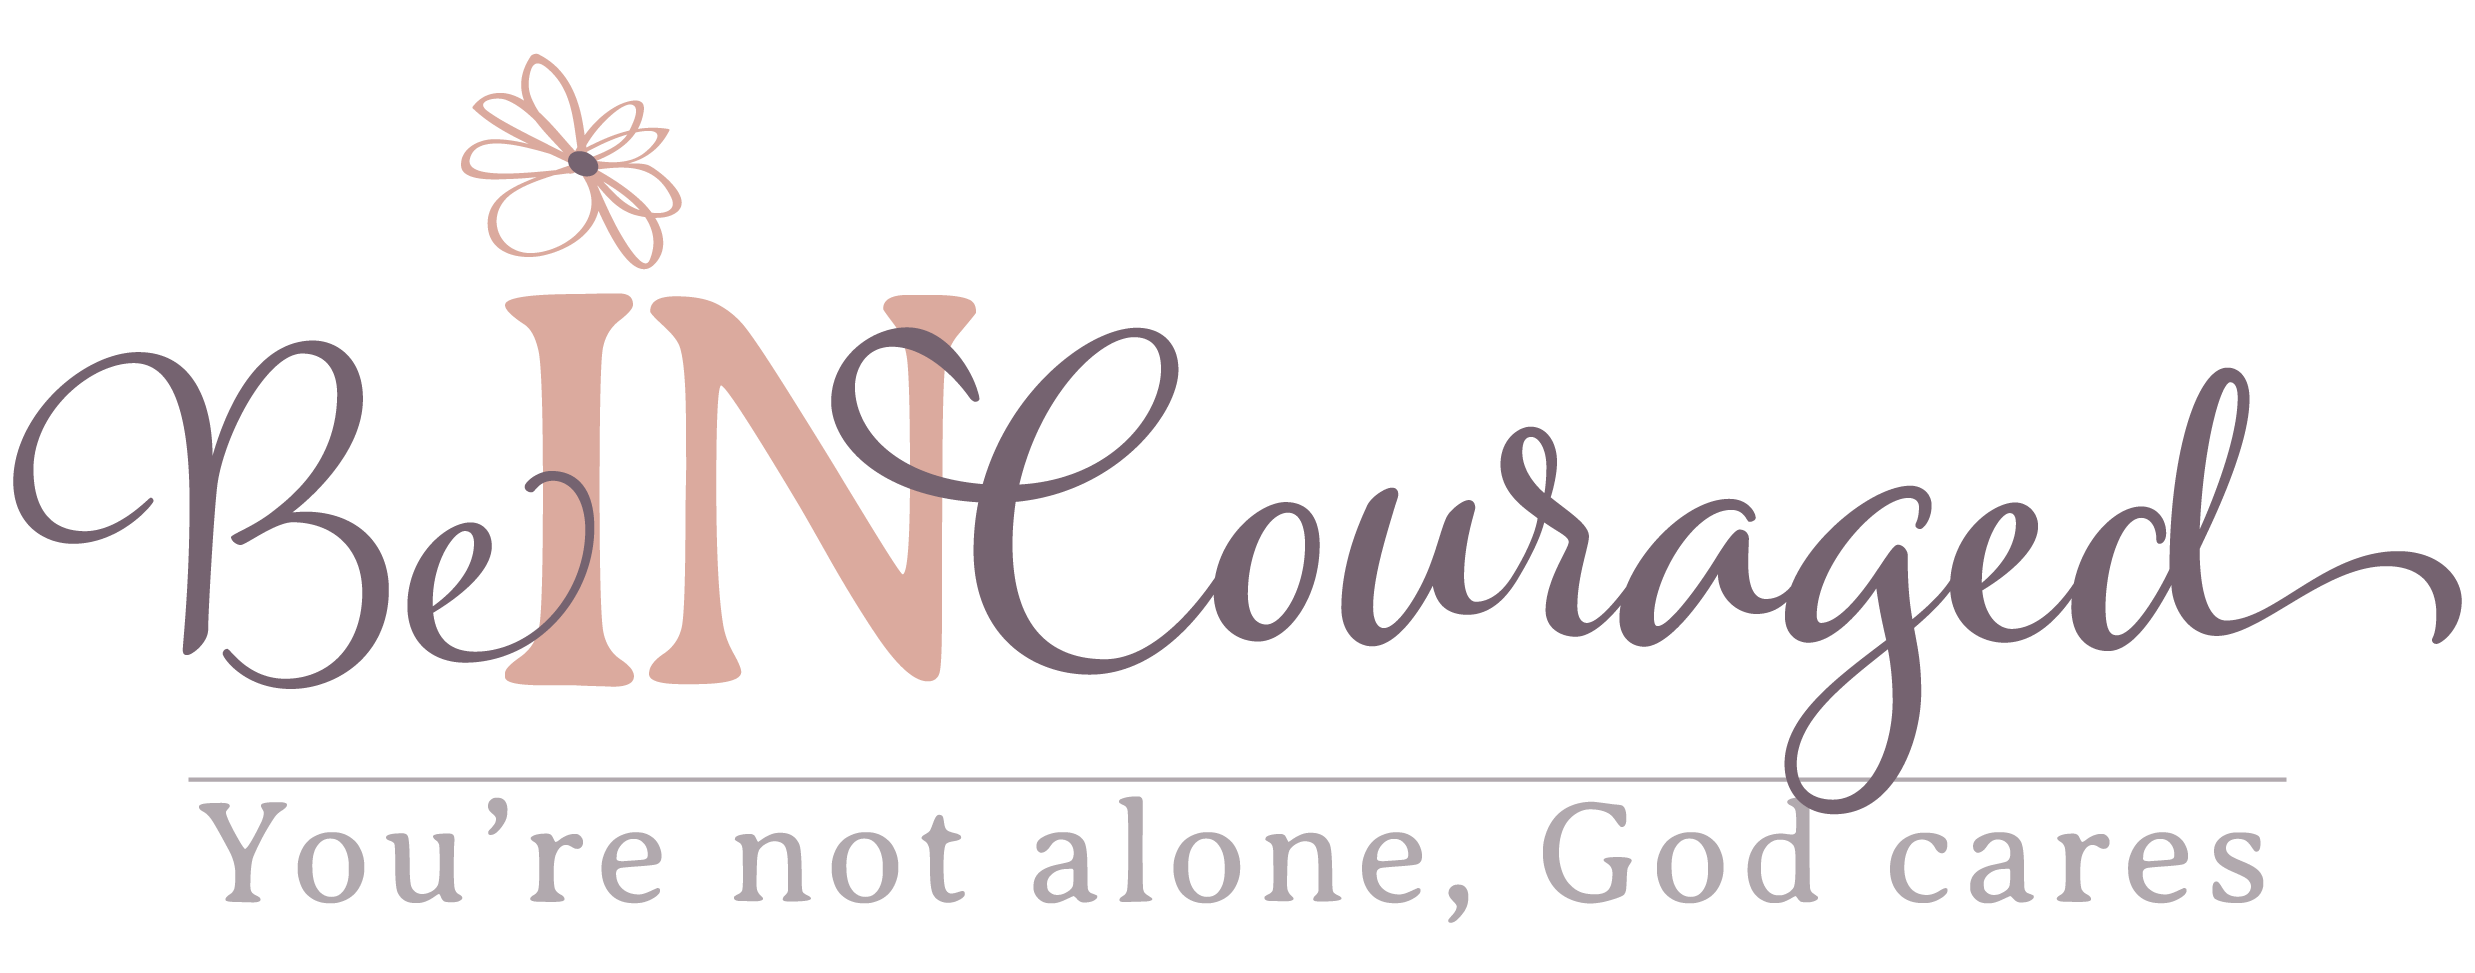 Be-in-couraged Final_Logo w-tagline